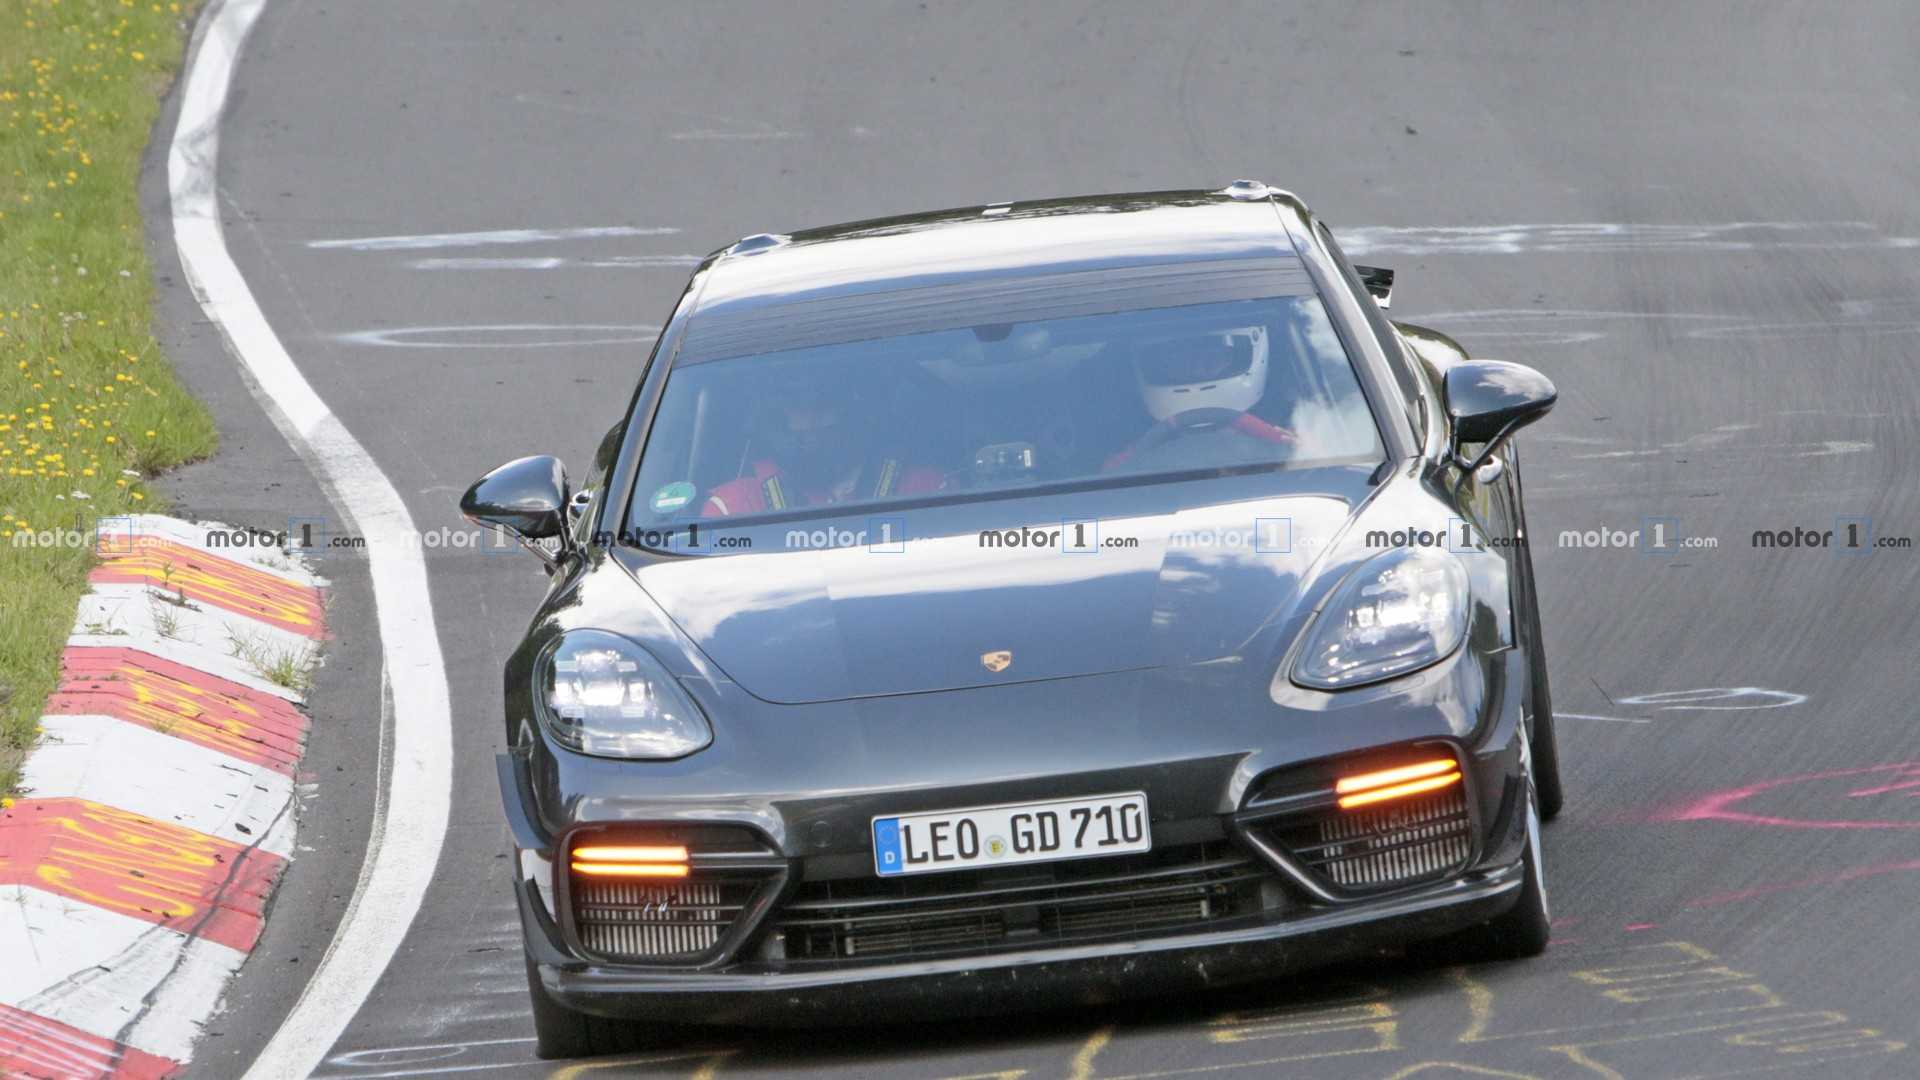 Porsche Panamera Turbo with aero kit spy photo